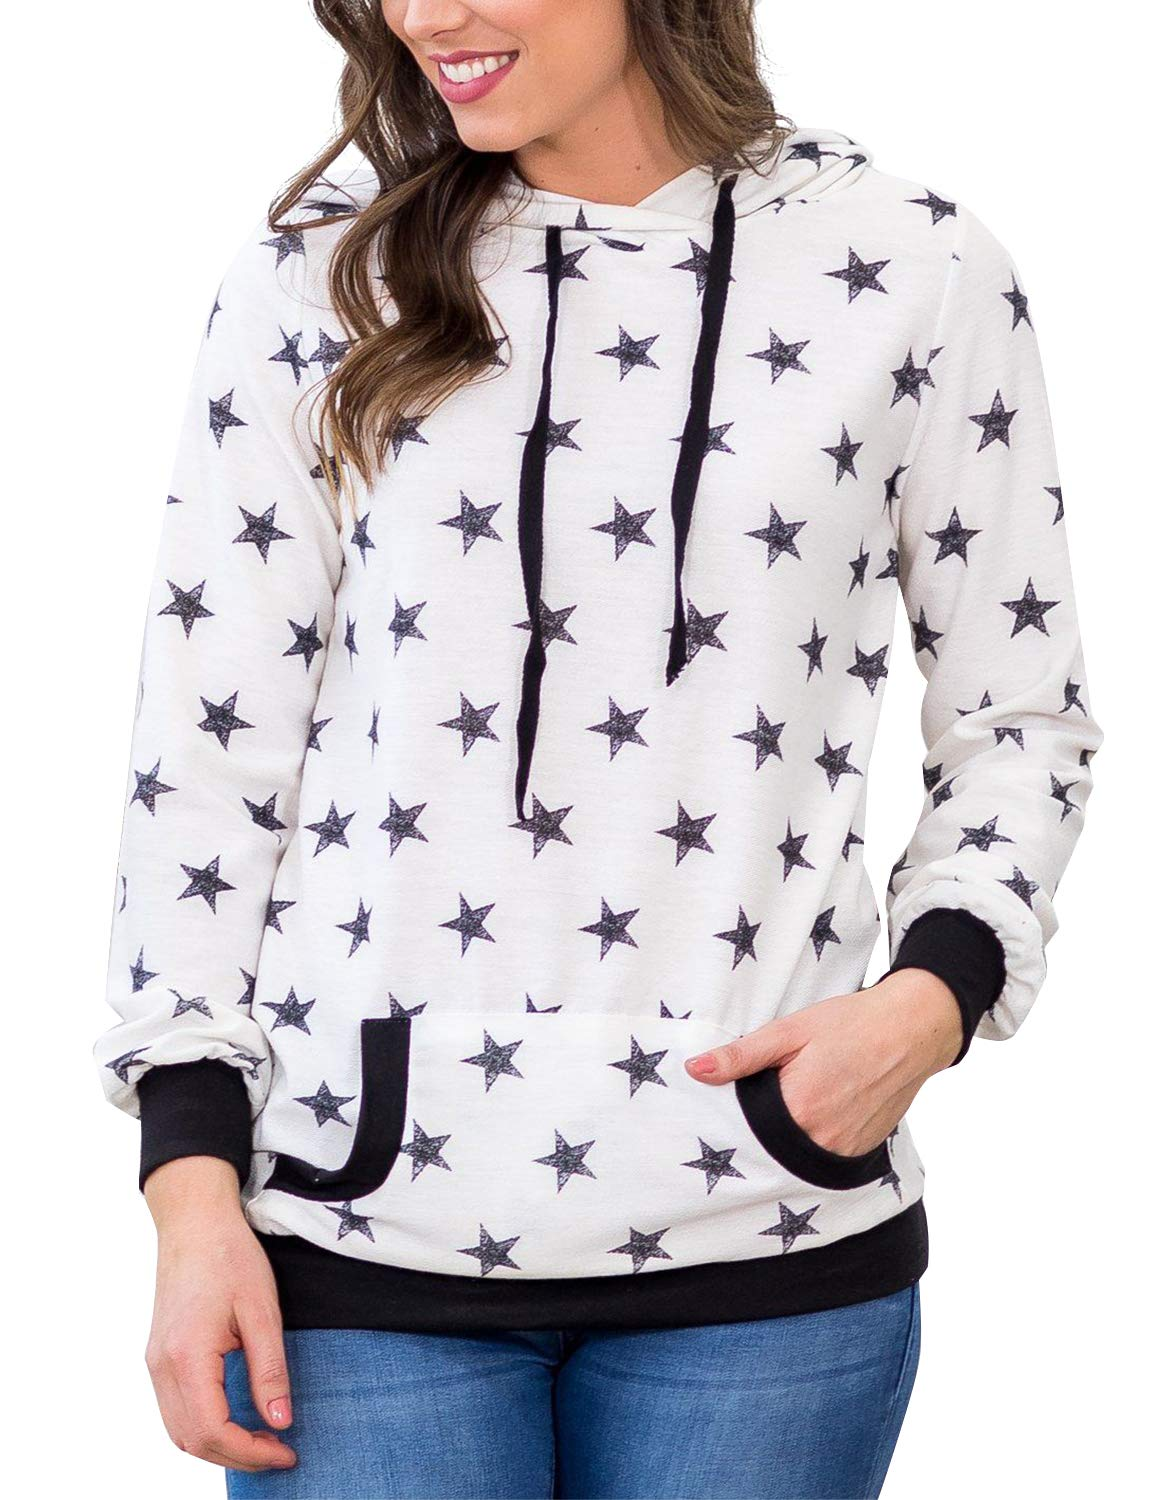 BMJL Women's Casual Long Sleeve Sweatershirt Hooded Star Print Pullover with Pocket White